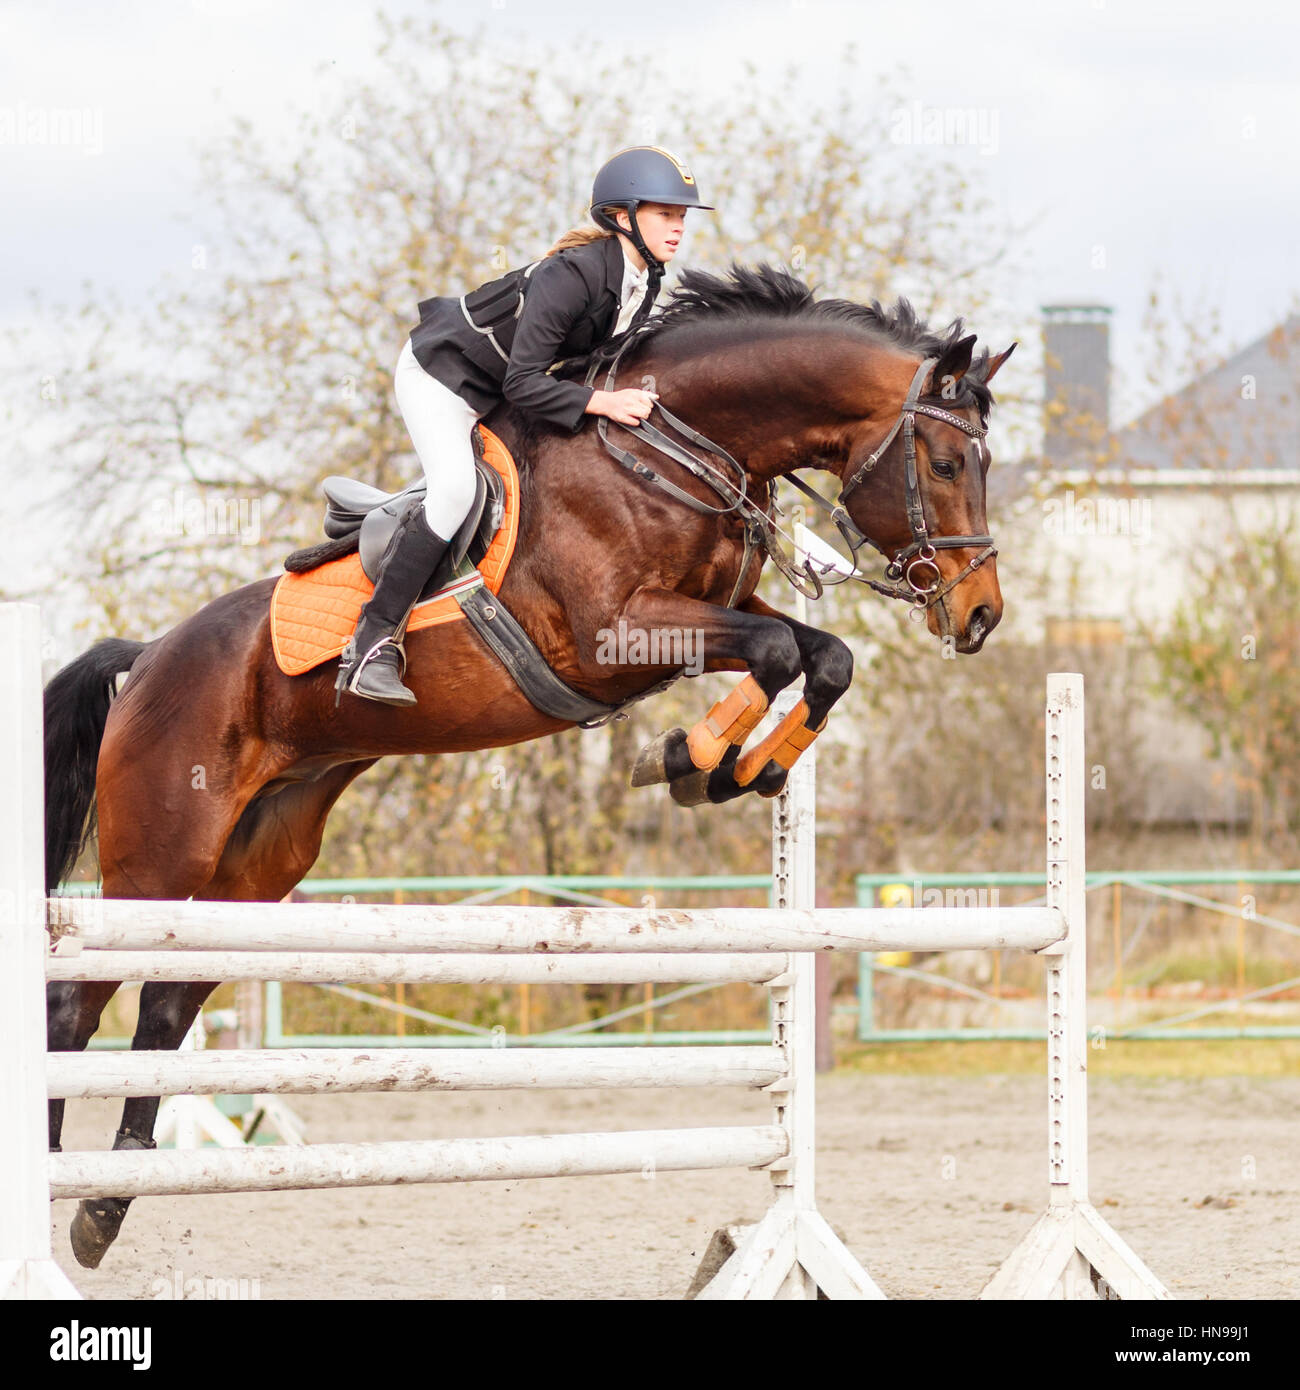 Young Female Rider On Bay Horse Jumping Over Hurdle On Equestrian Stock Photo Alamy